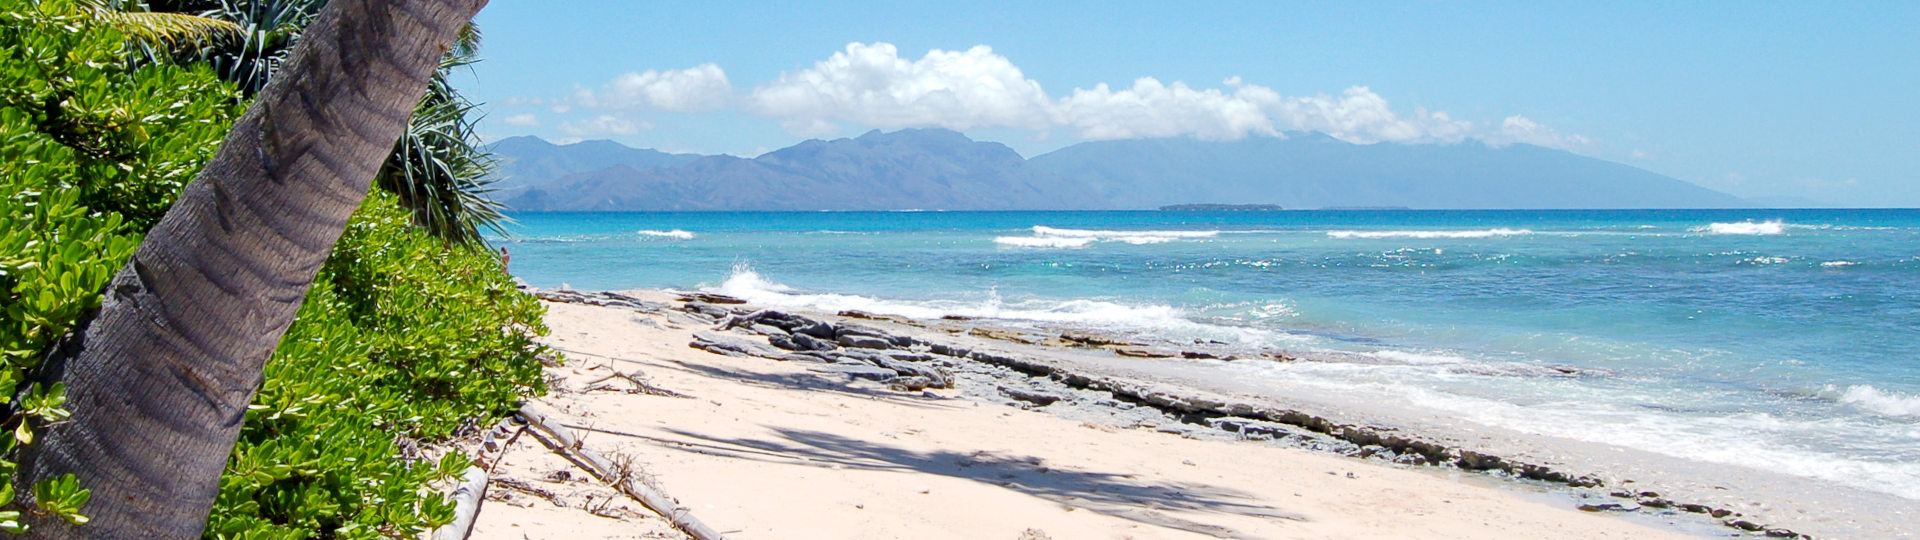 Poindimié beach in New Caledonia